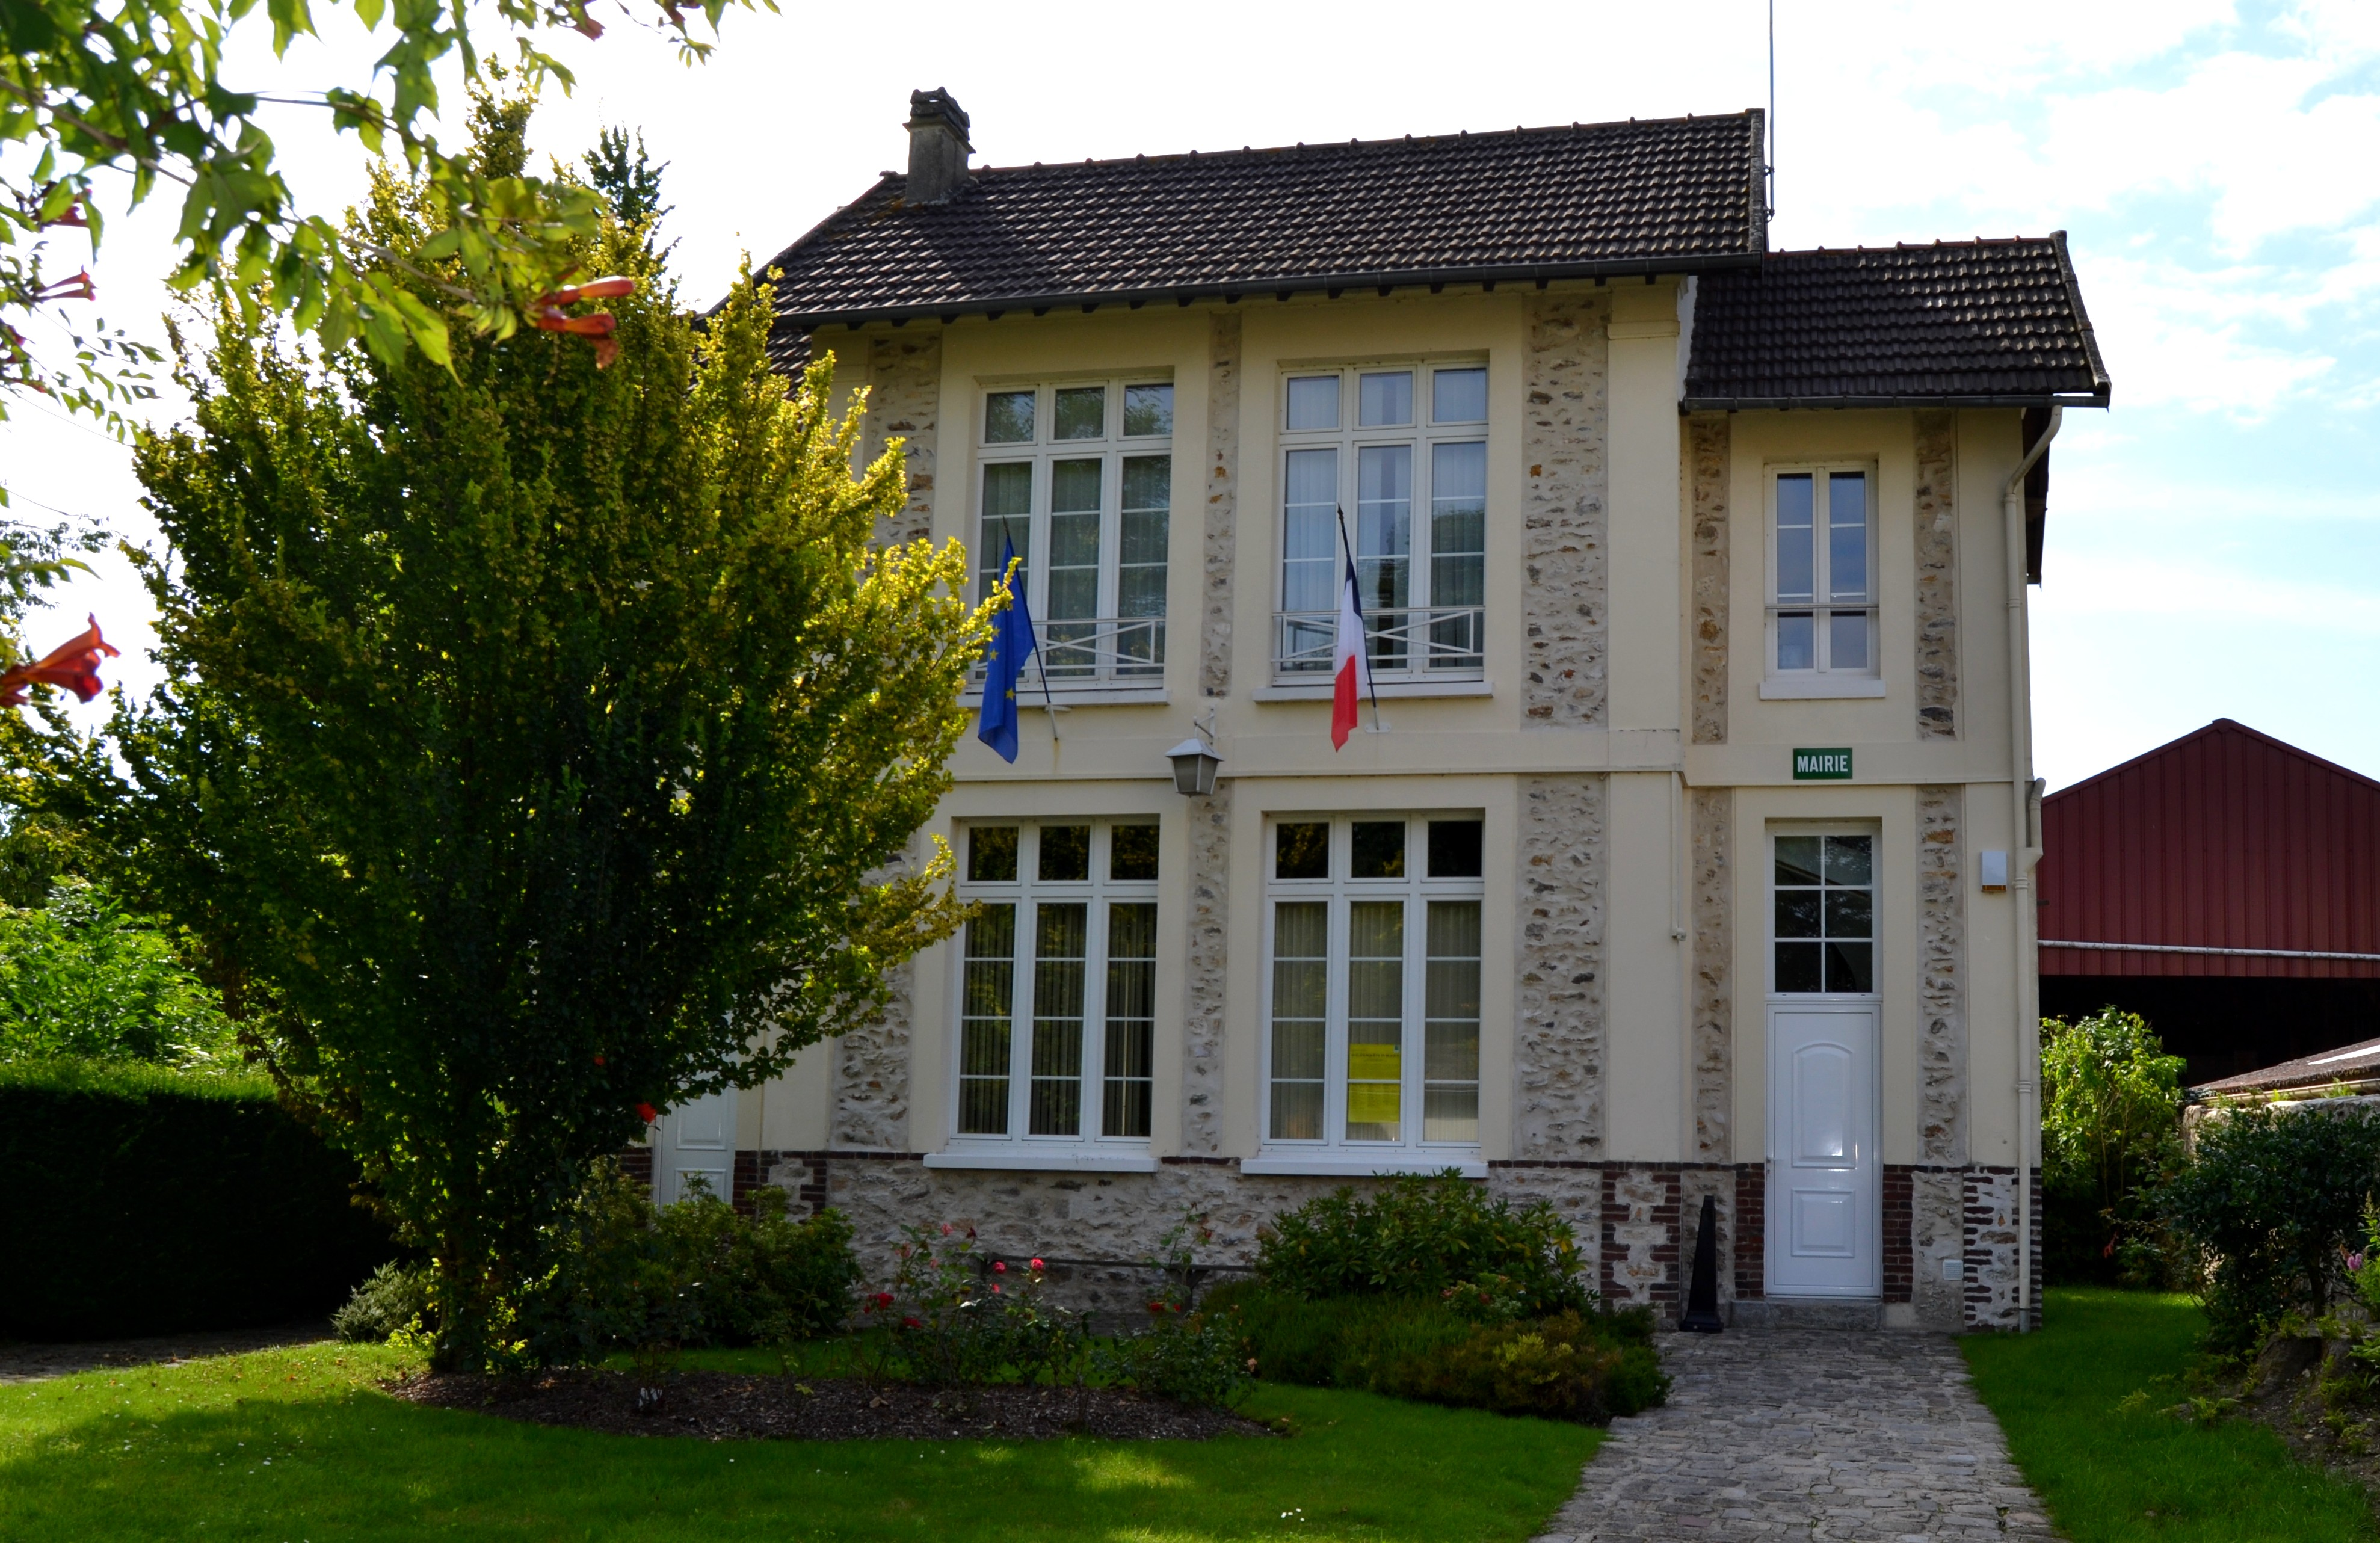 Mairie du Plessis-Gassot